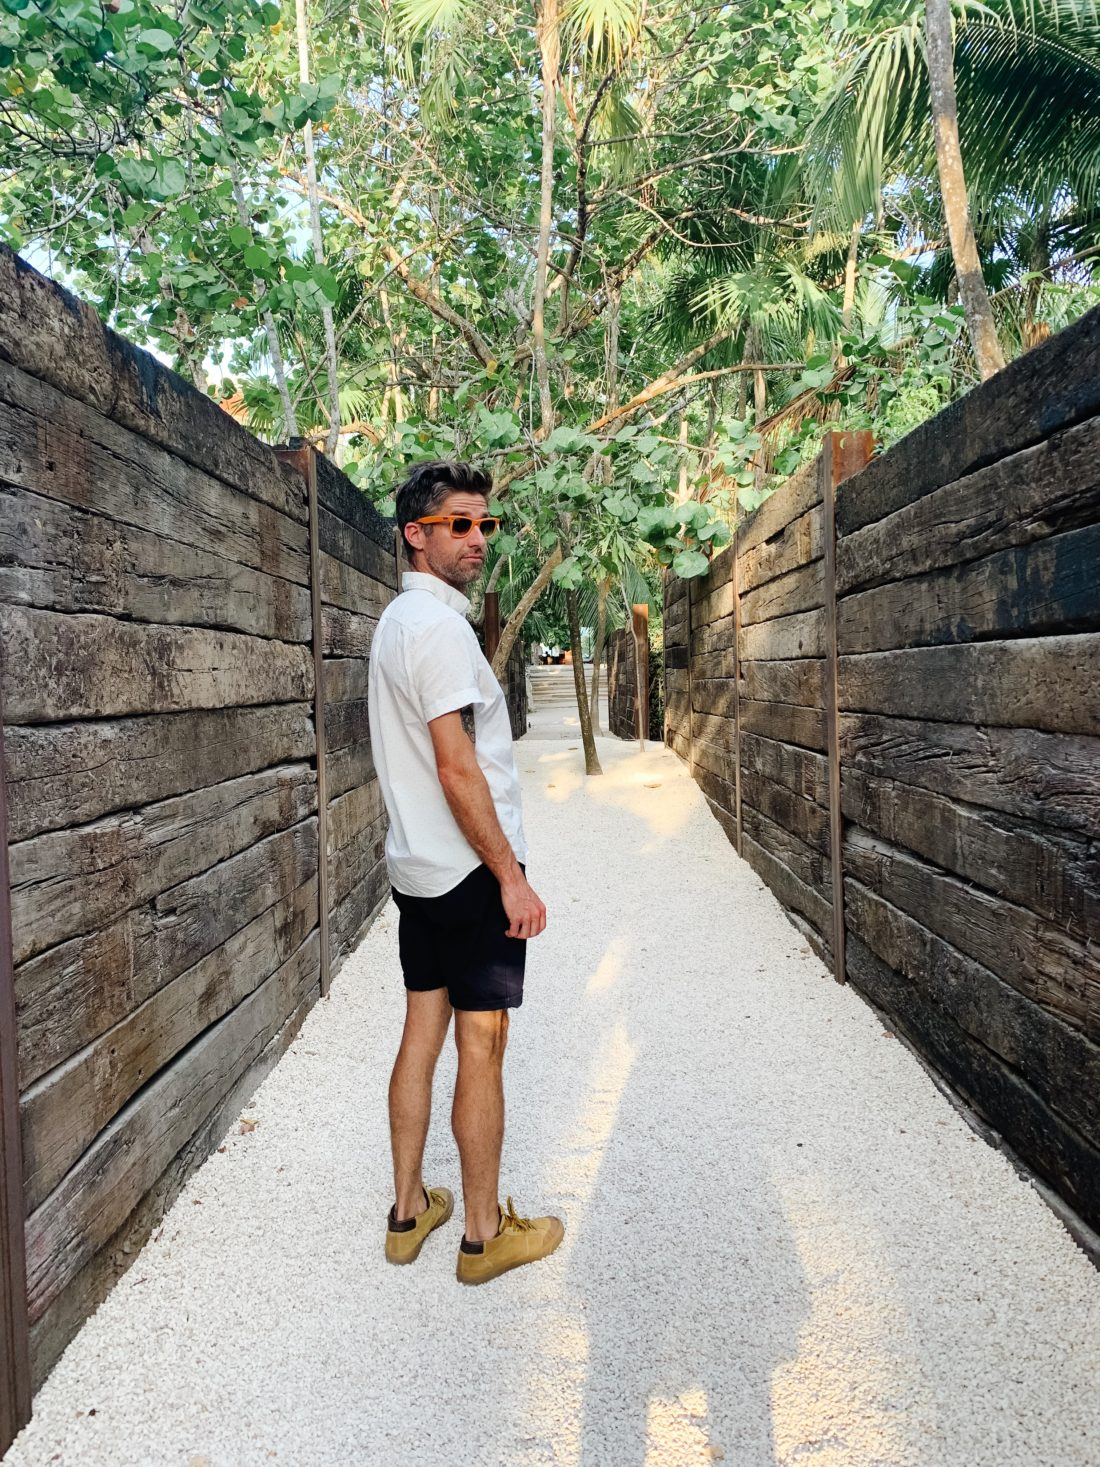 Eva Amurri Martino's Husband Kyle walking in Tulum Mexico